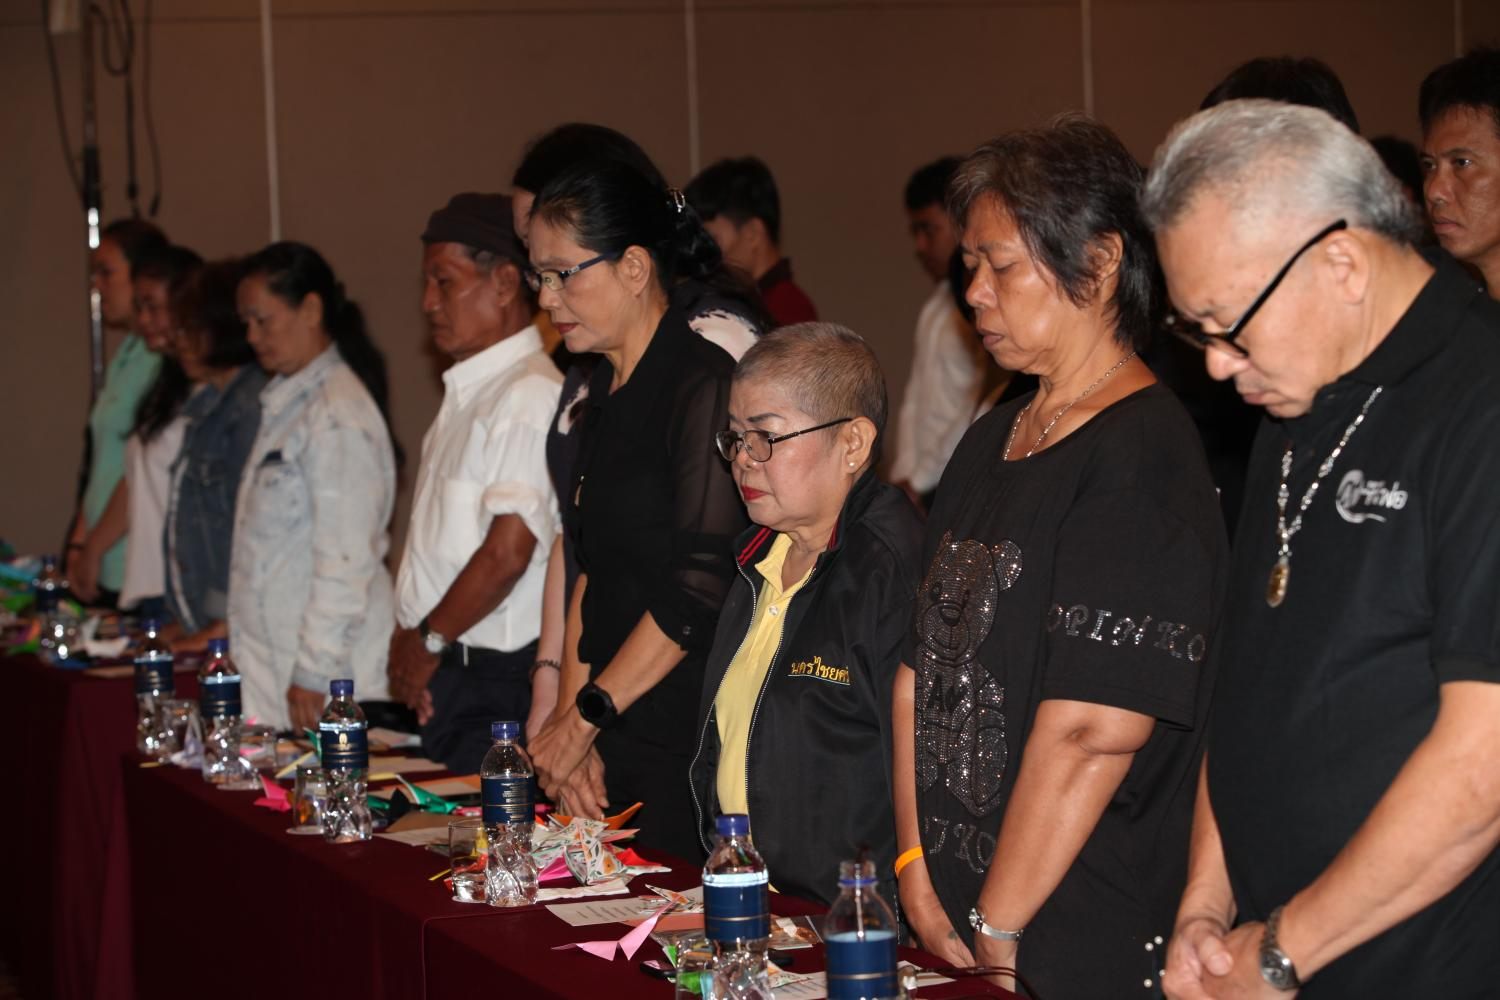 Anti-alcohol network advocates observe a minute's silence for the death of product presenter Thitima 'Lunlabelle' Noraphanpiphat during a seminar on the fatal impact of heavy and fast drinking in Bangkok yesterday.Apichart Jinakul